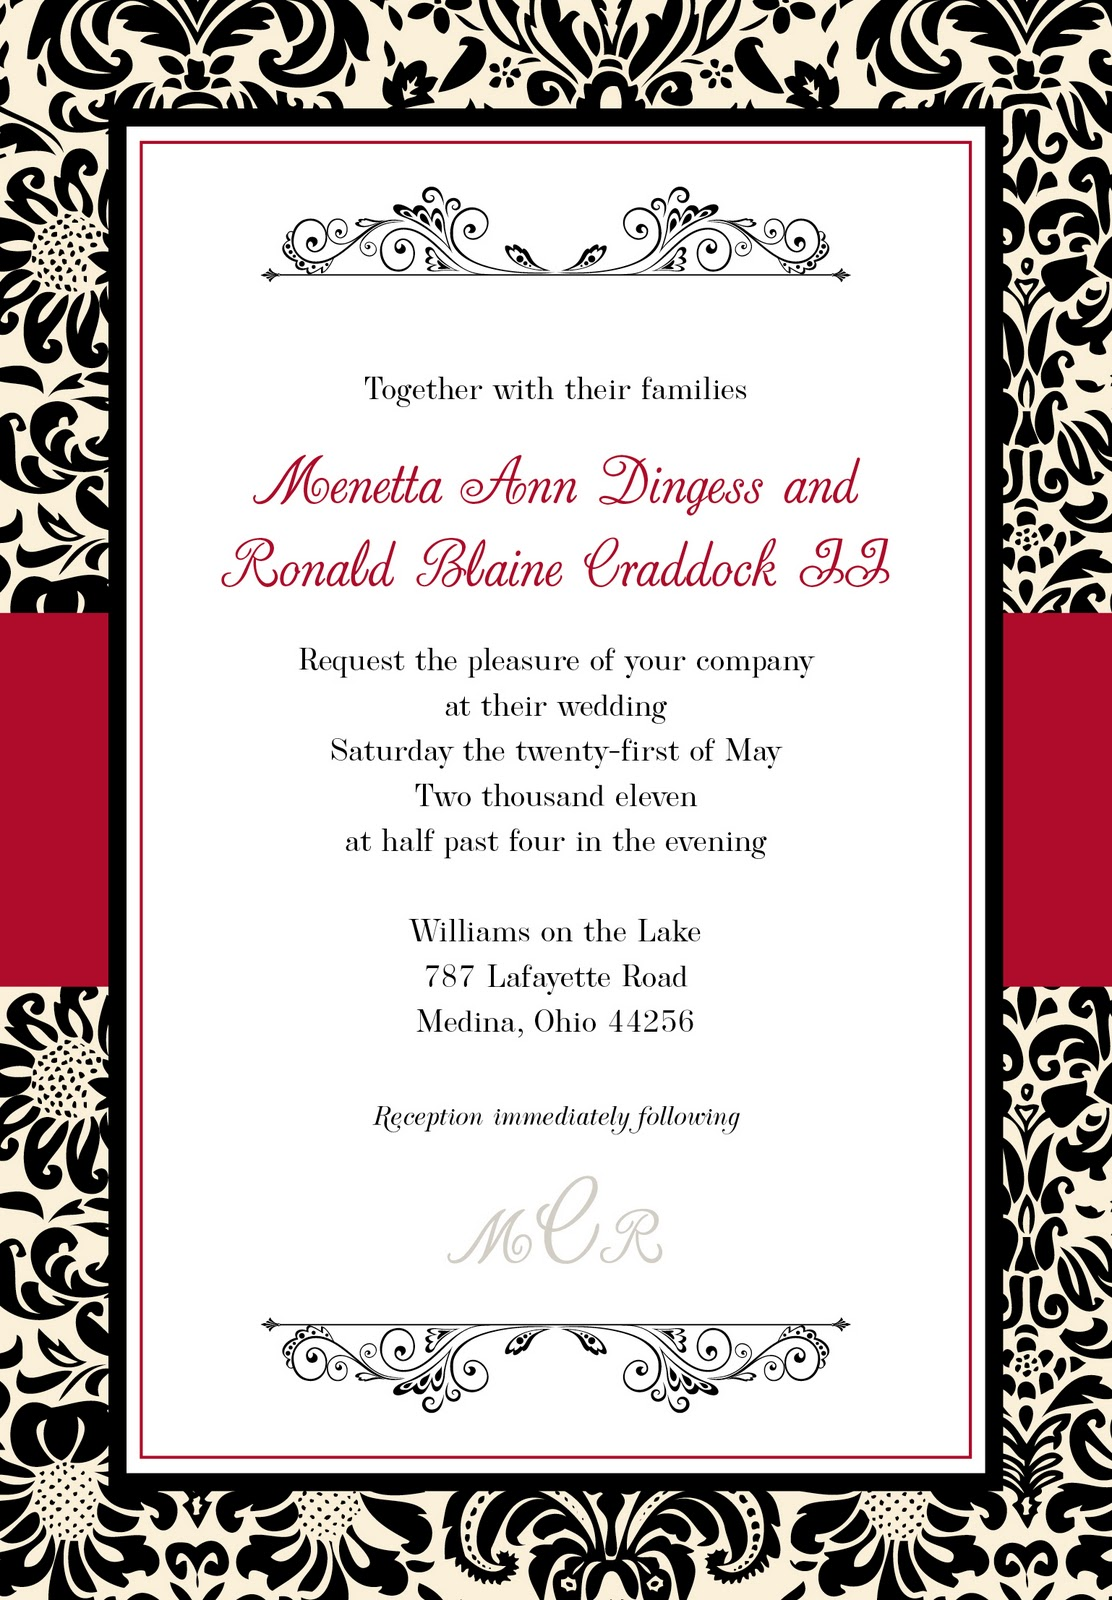 Black, Red, White and Ivory Damask Invitation